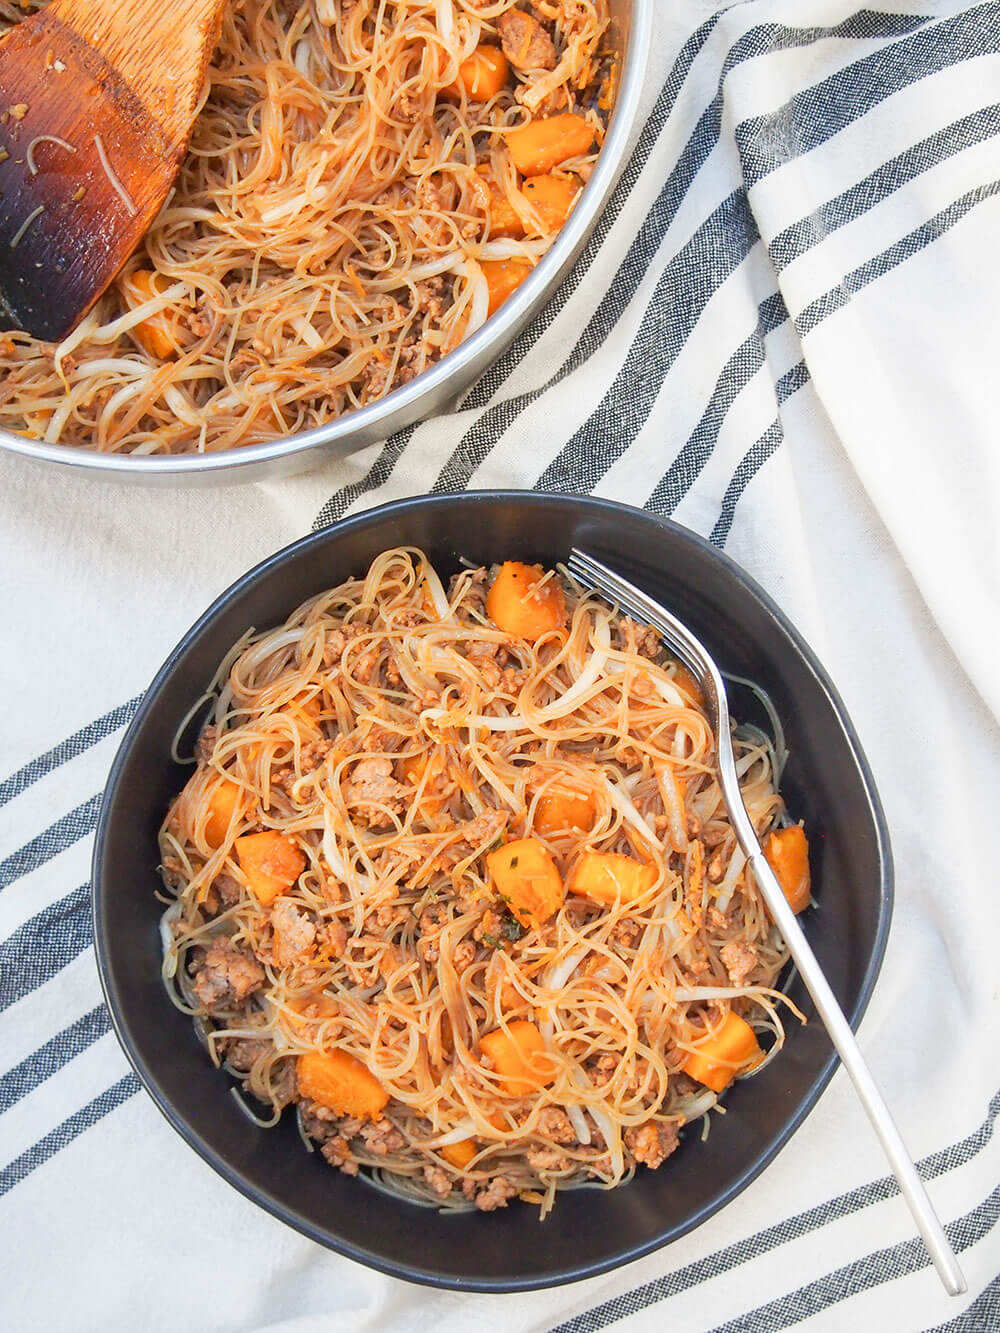 Taiwanese pumpkin rice noodles overhead shot of bowl and pan